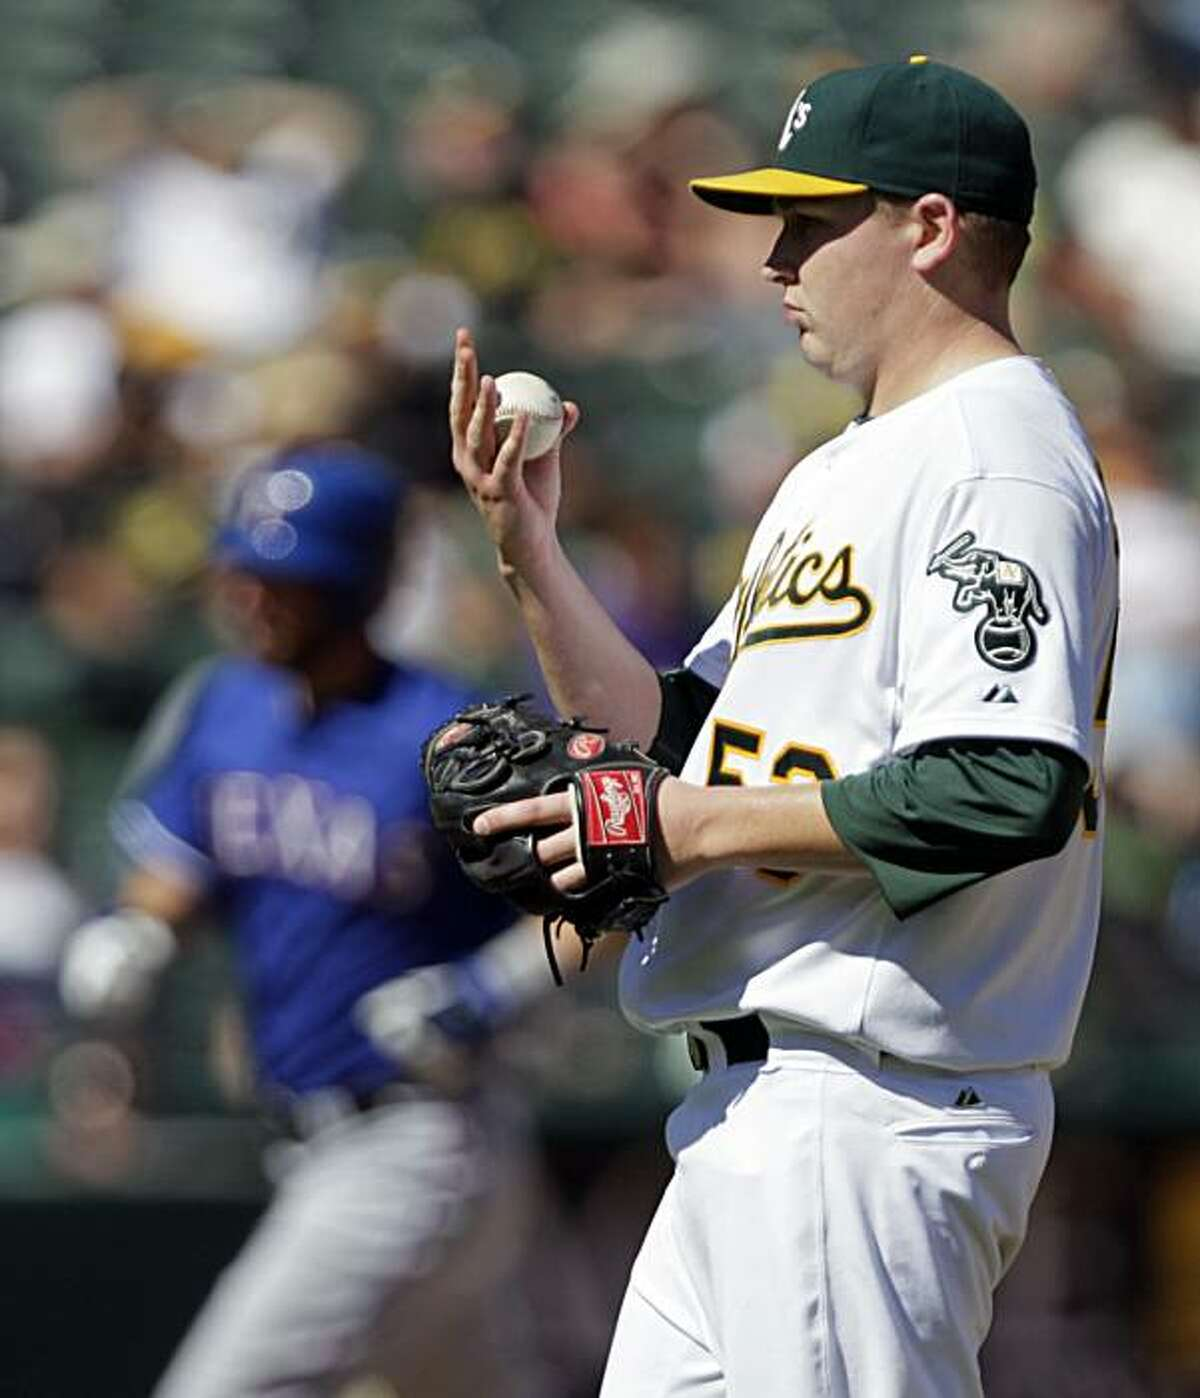 Oakland Athletics' Trevor Cahill, right, regroups as Texas Rangers' Jeff Francoeur, left, runs the bases after hitting a home run during the fourth inning of a baseball game Sunday, Sept. 26, 2010, in Oakland, Calif.